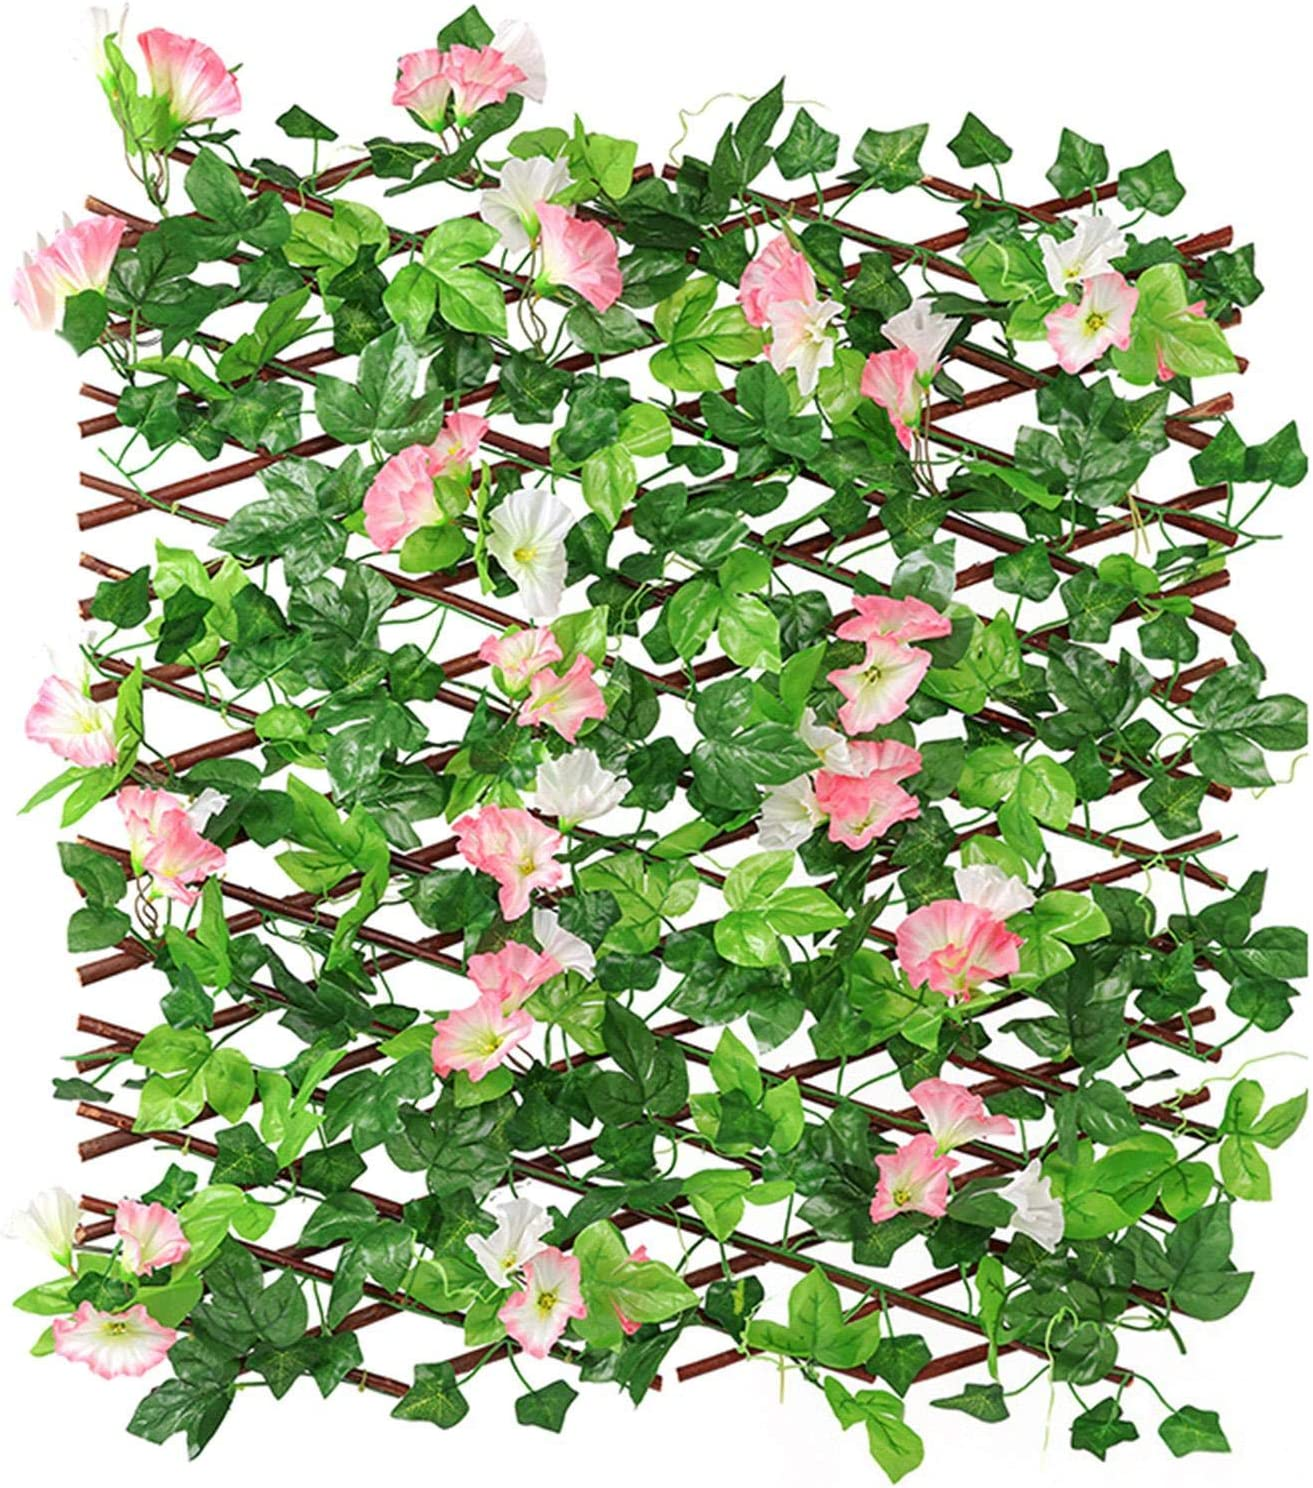 Poiuqew Trellis Fence Panels safety Max 78% OFF with and Leaves Flowers Artificial